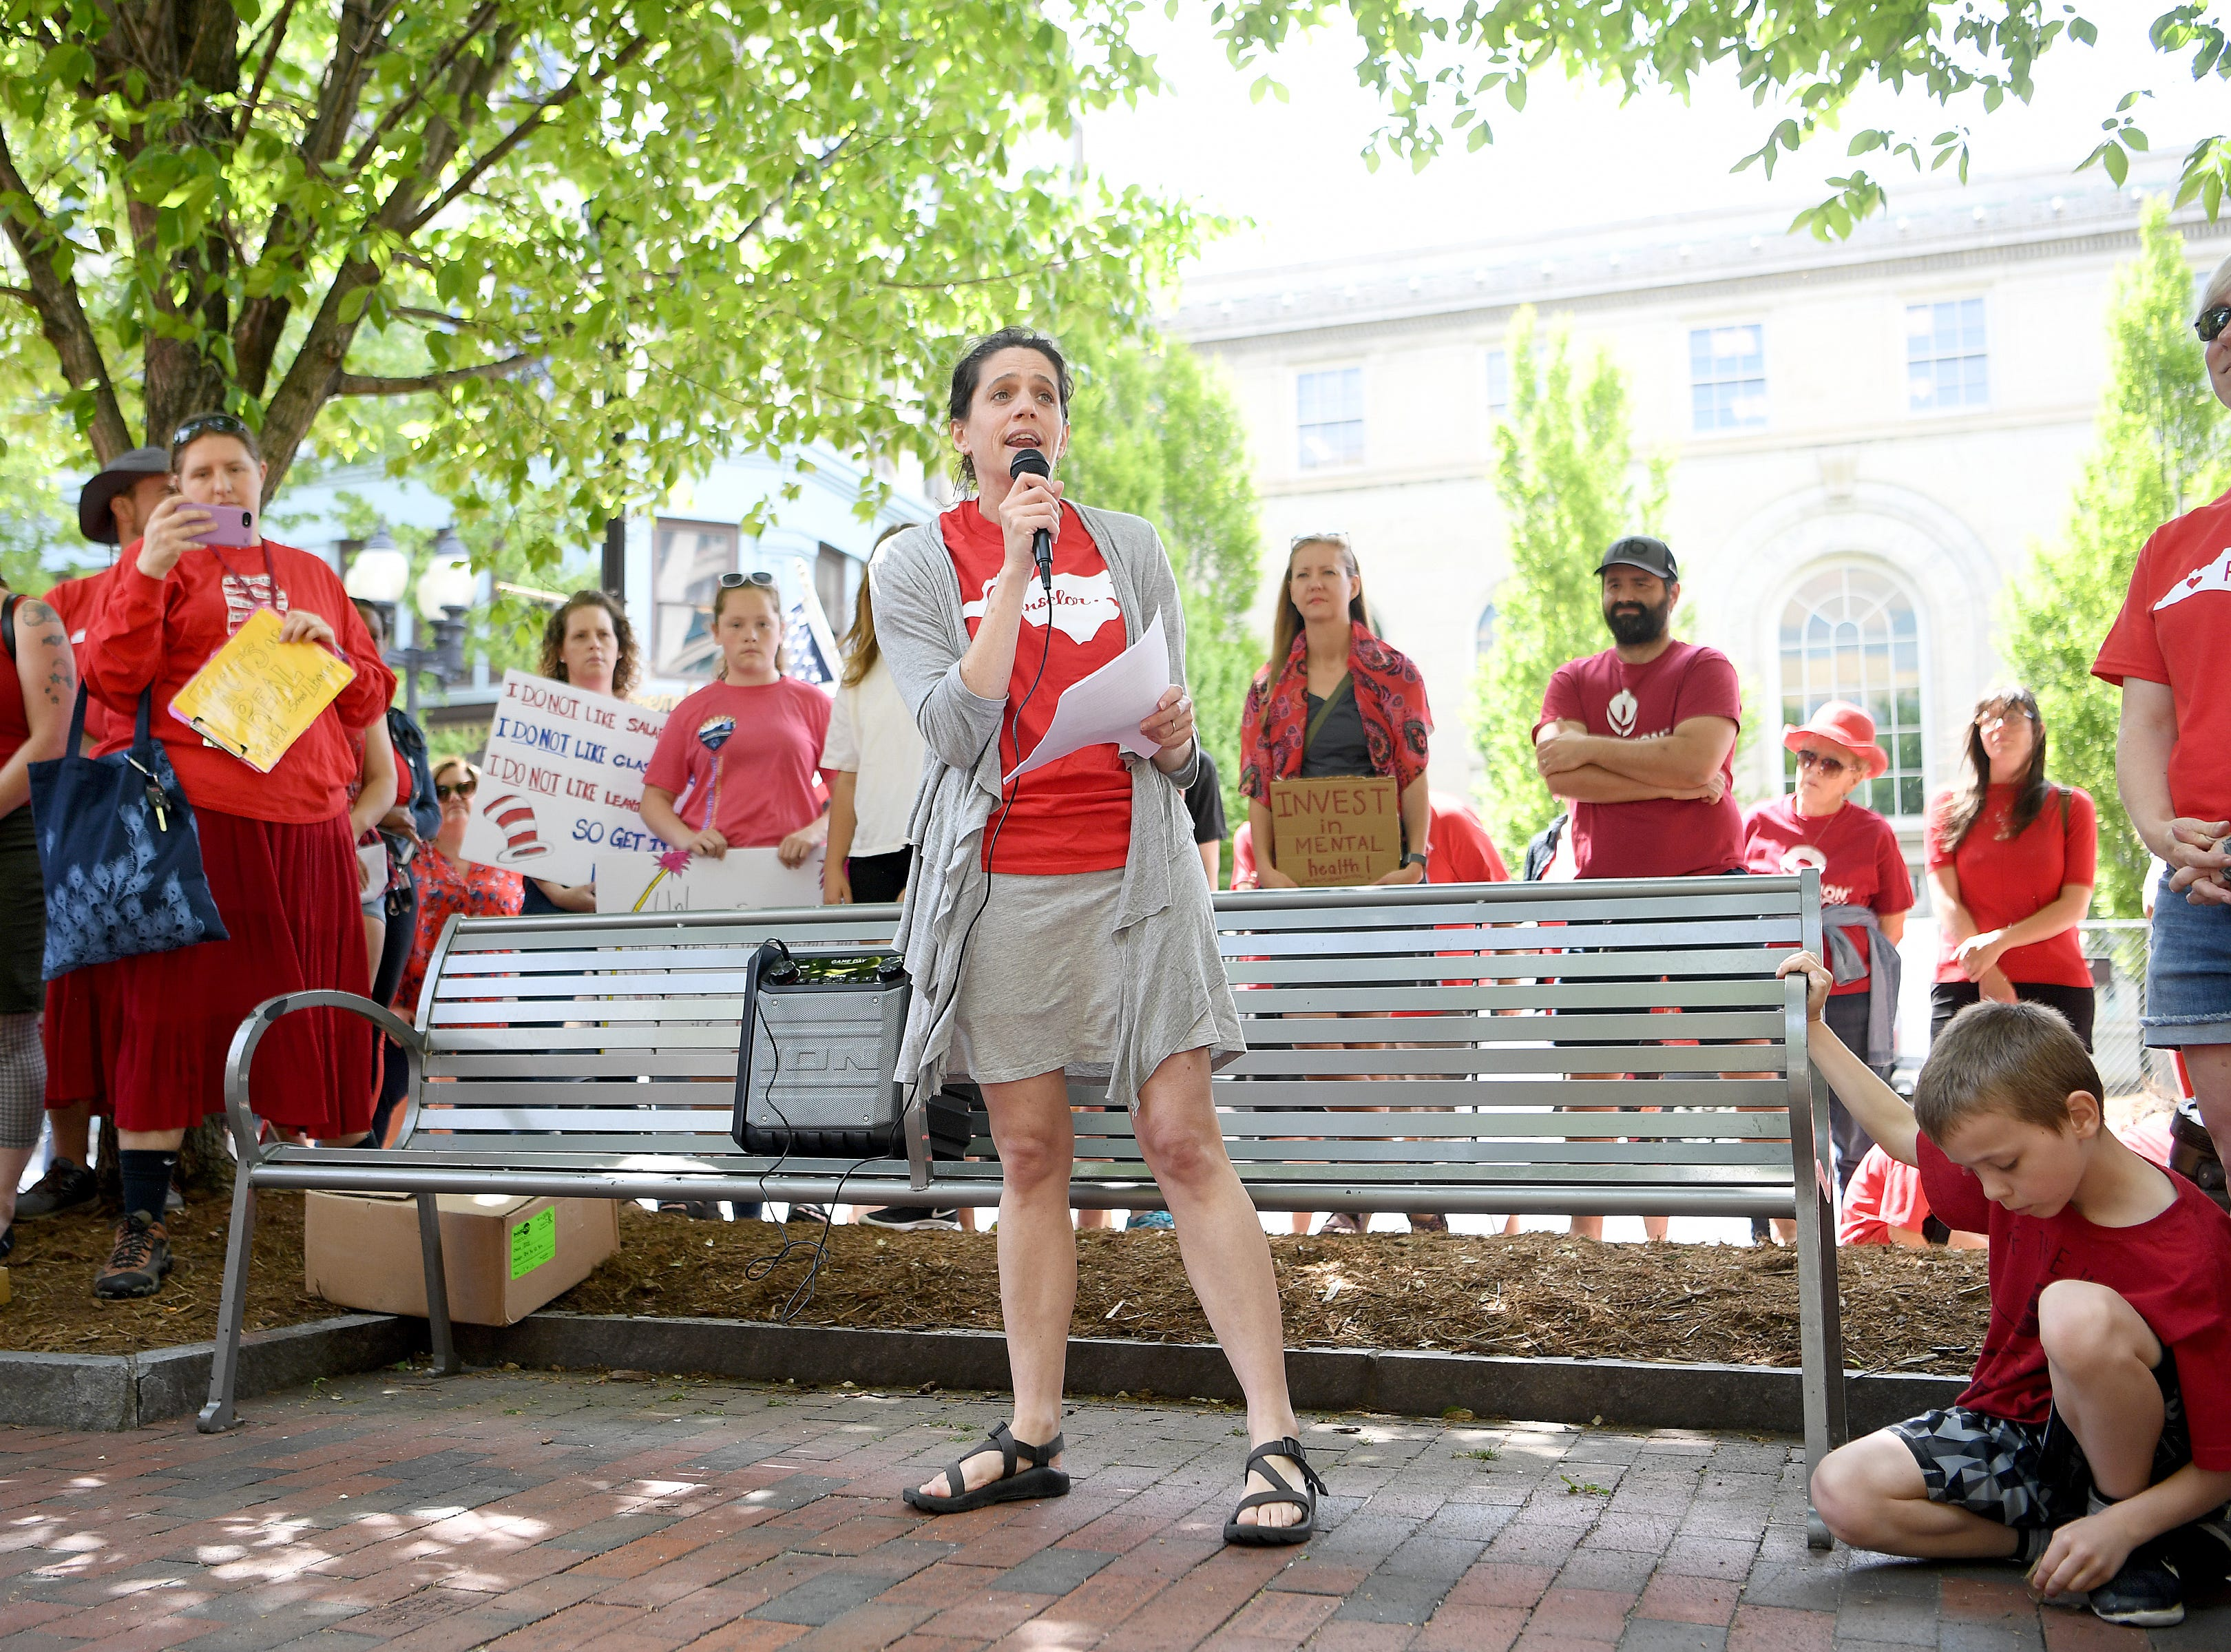 Kristin Keliher, a school counselor at Pisgah Elementary School, speaks to the crowd during the Asheville rally for public education at the Vance monument on May 1, 2019. The rally coincided with the NC Association of EducatorsÕ Day of Action in Raleigh.